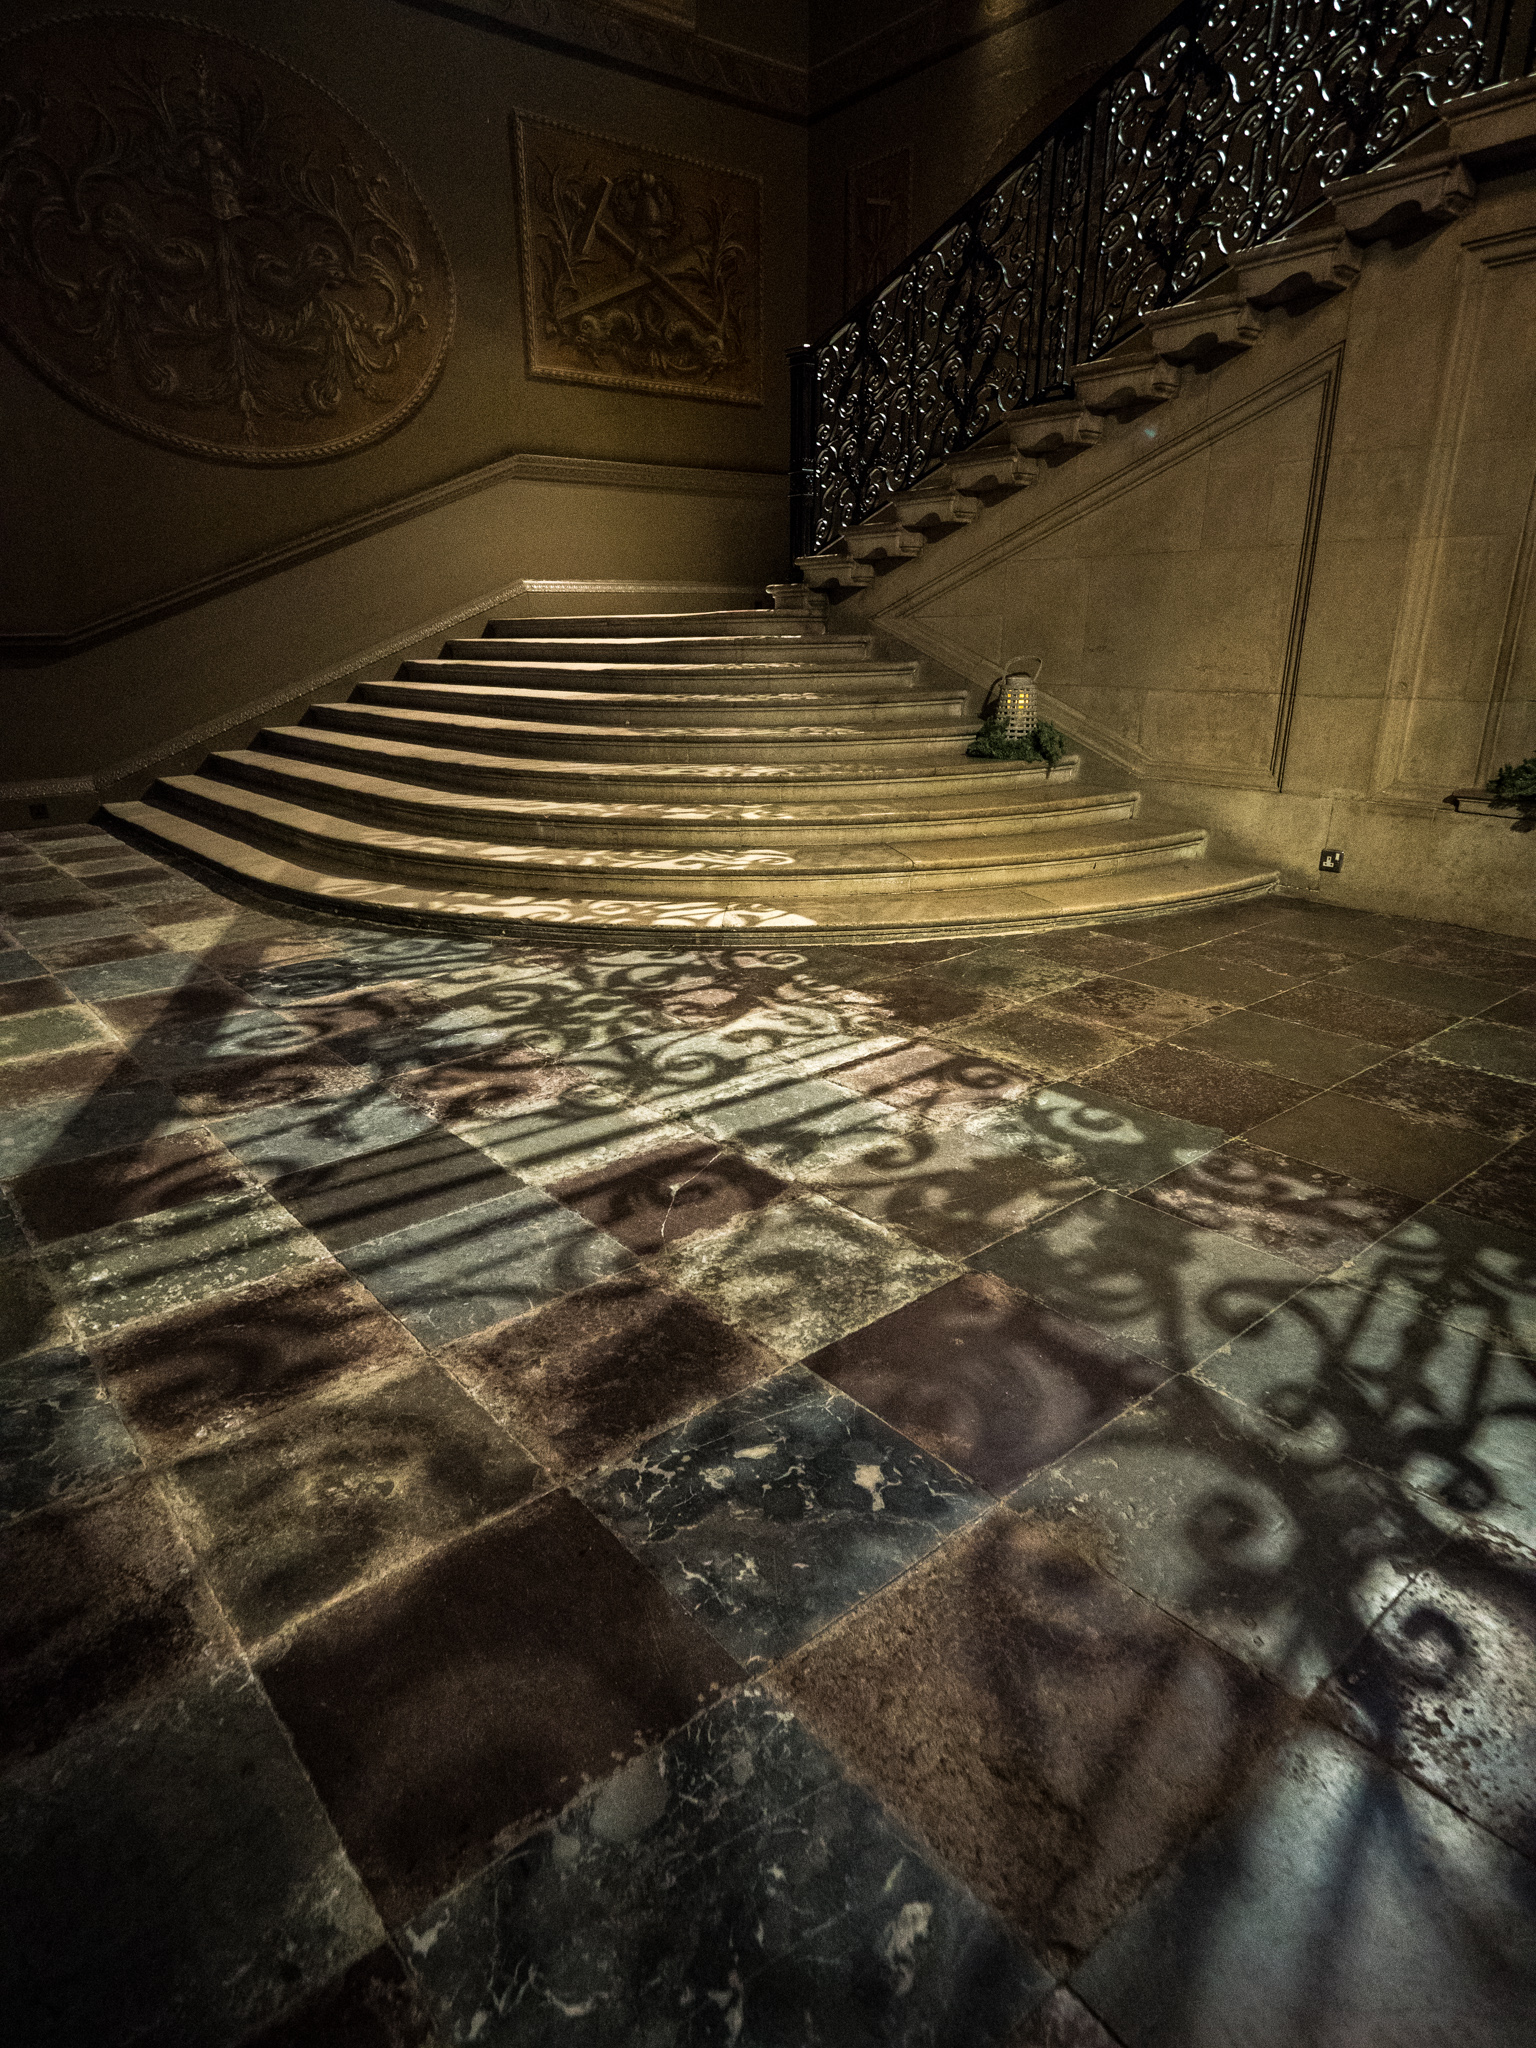 I couldn't resist the wonderful shadows cast on the floor by the railings on this amazing staircase